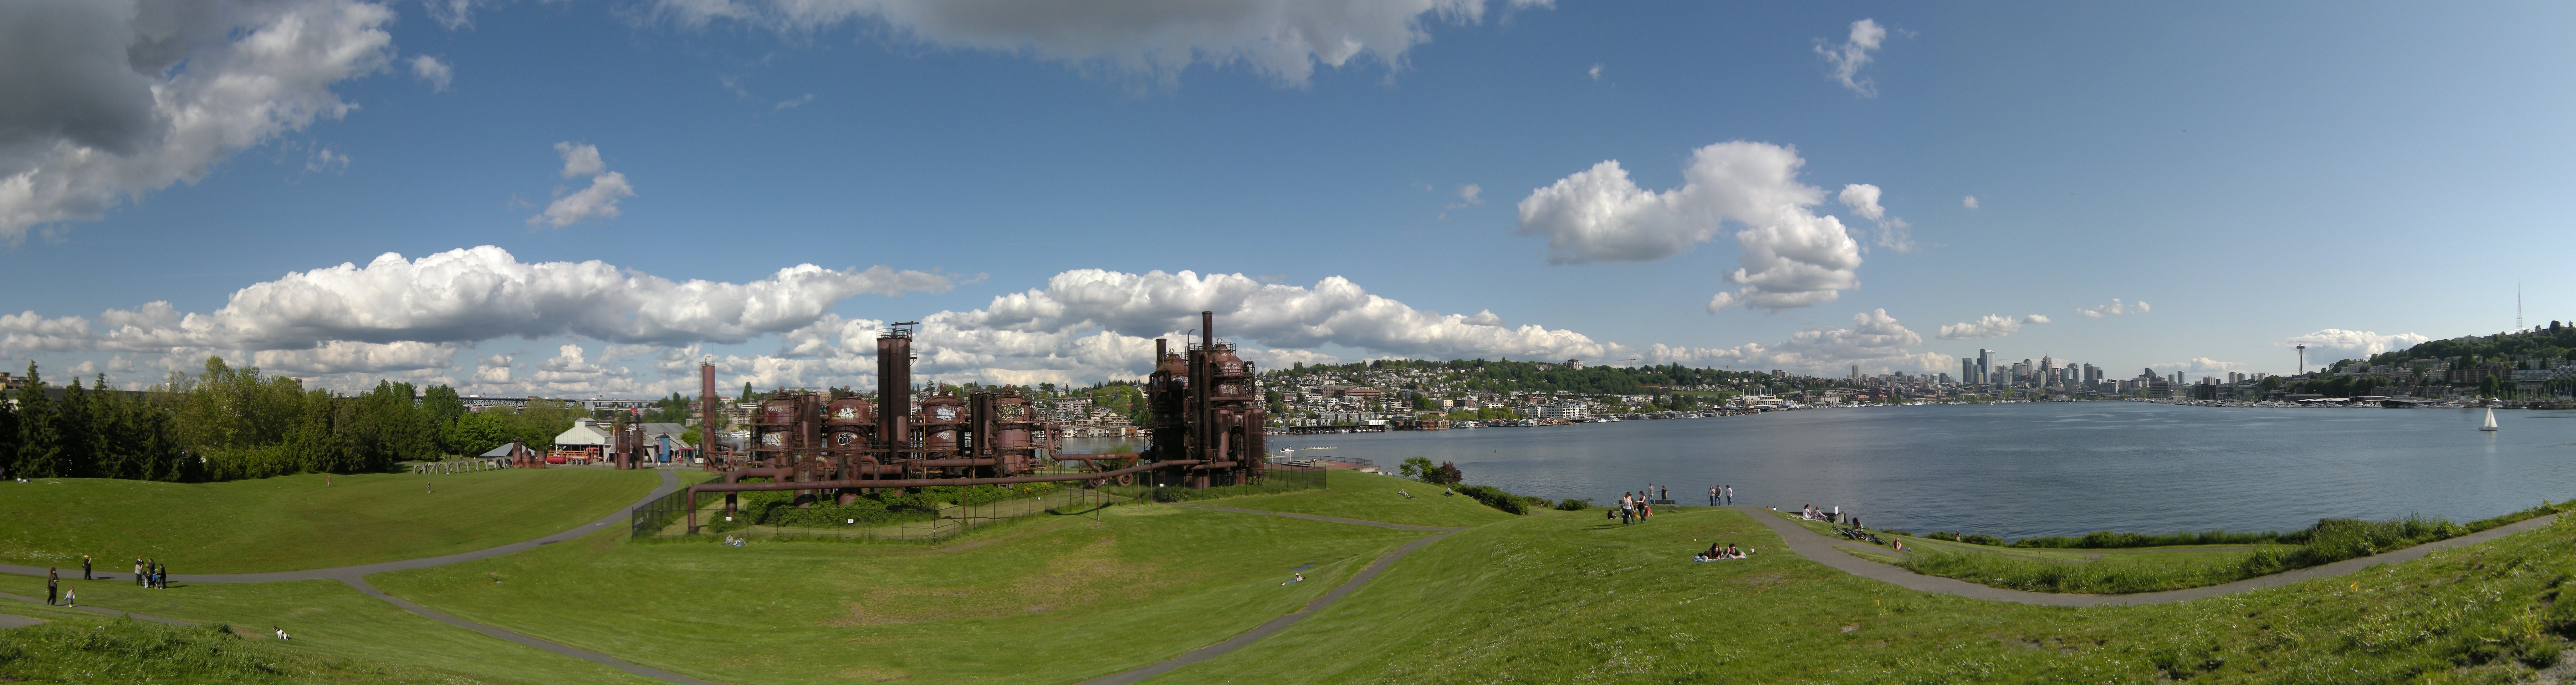 Seattle Gas Works Park, a 20-acre reclaimed industrial space now used as an urban park and once slated for demolition.